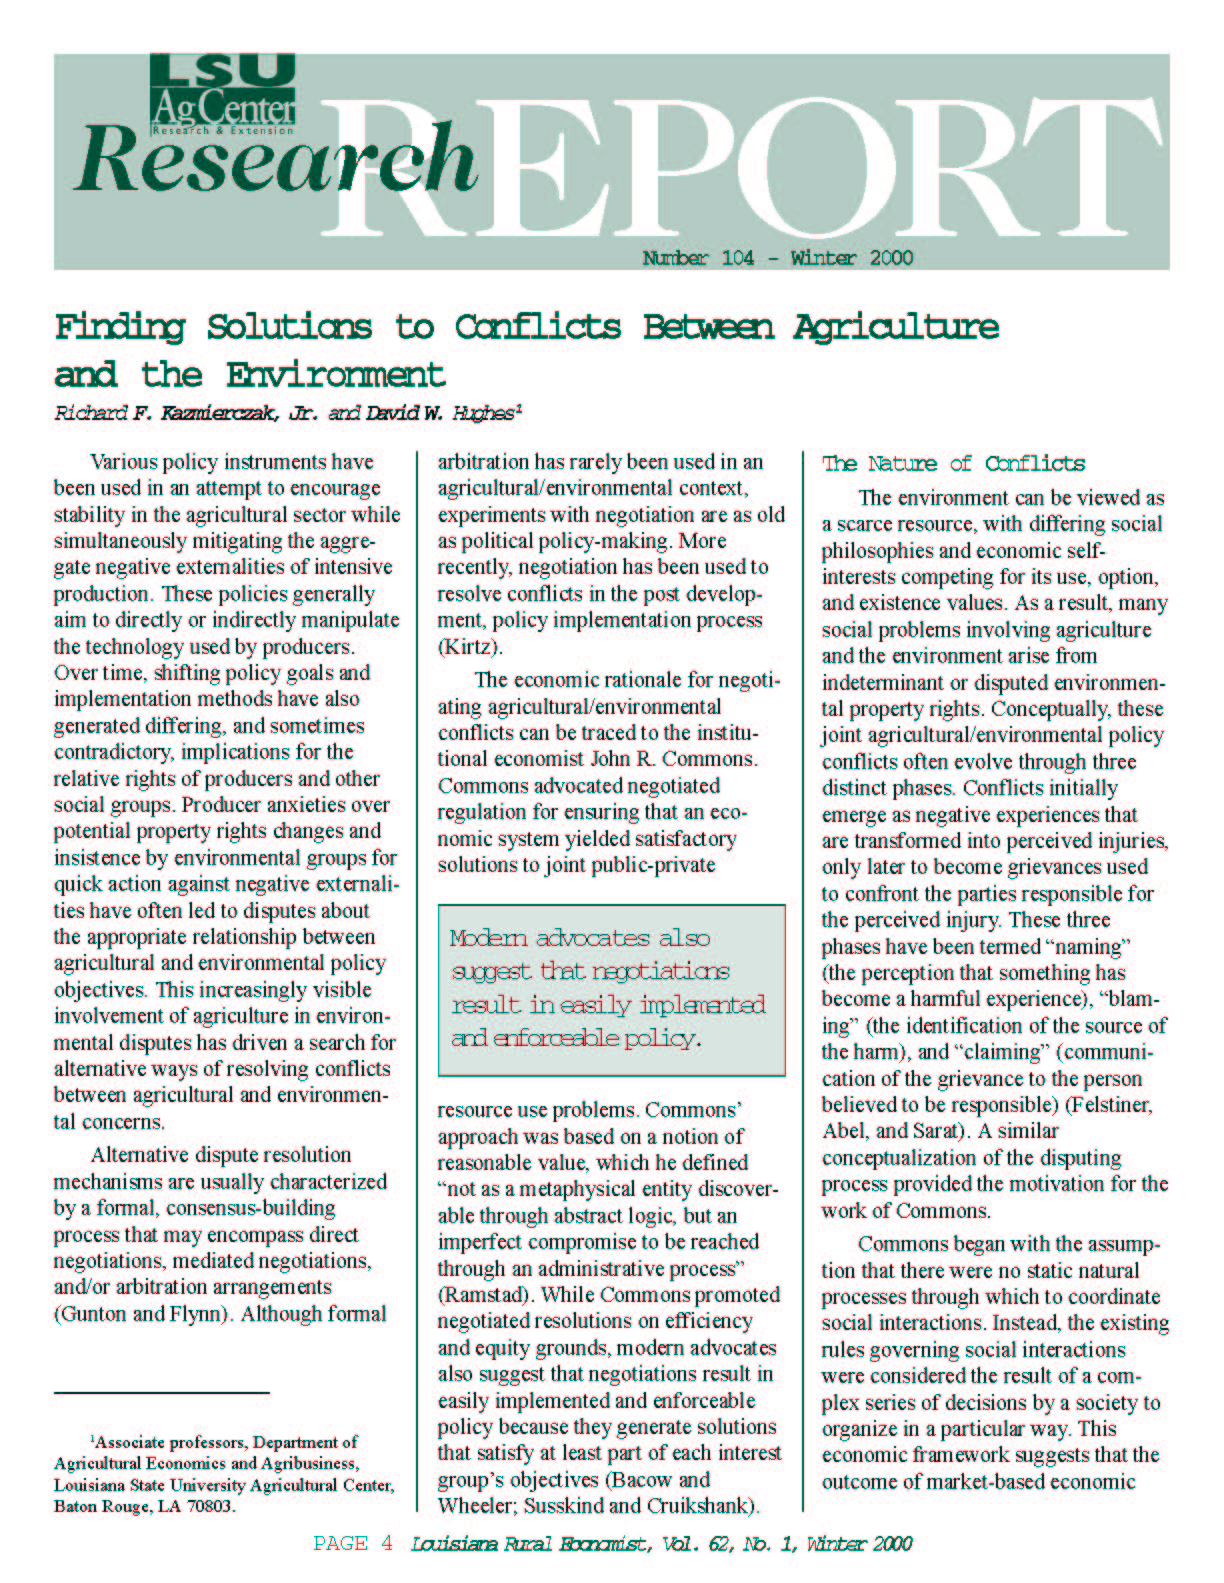 Finding Solutions to Conflicts Between Agriculture and the Environment (Winter 2000)